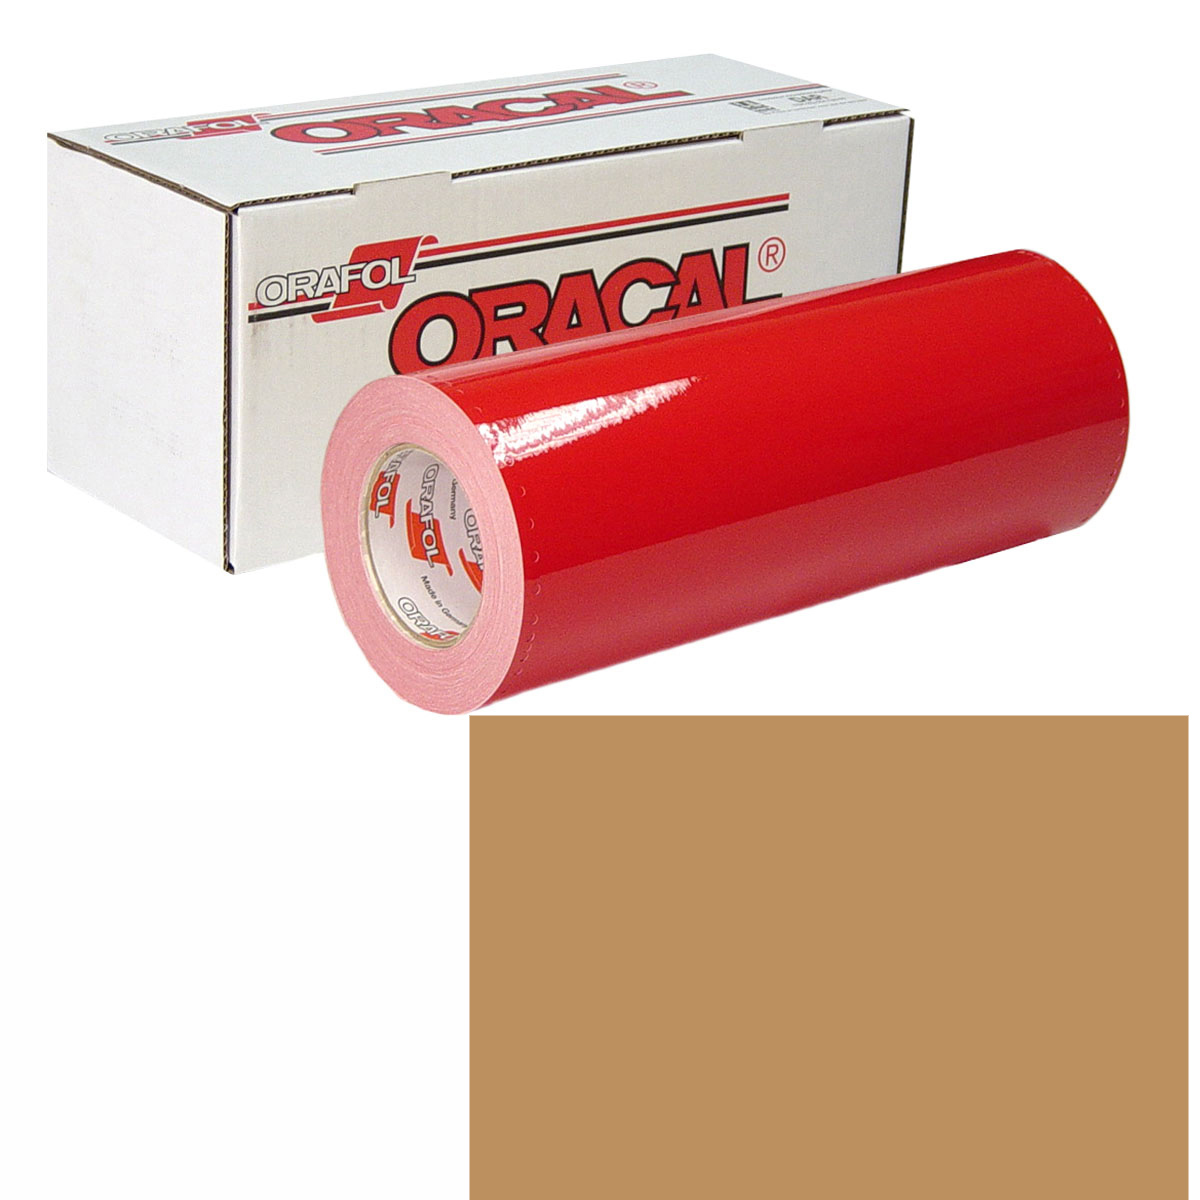 ORACAL 951M Unp 48in X 10yd 919 Gold